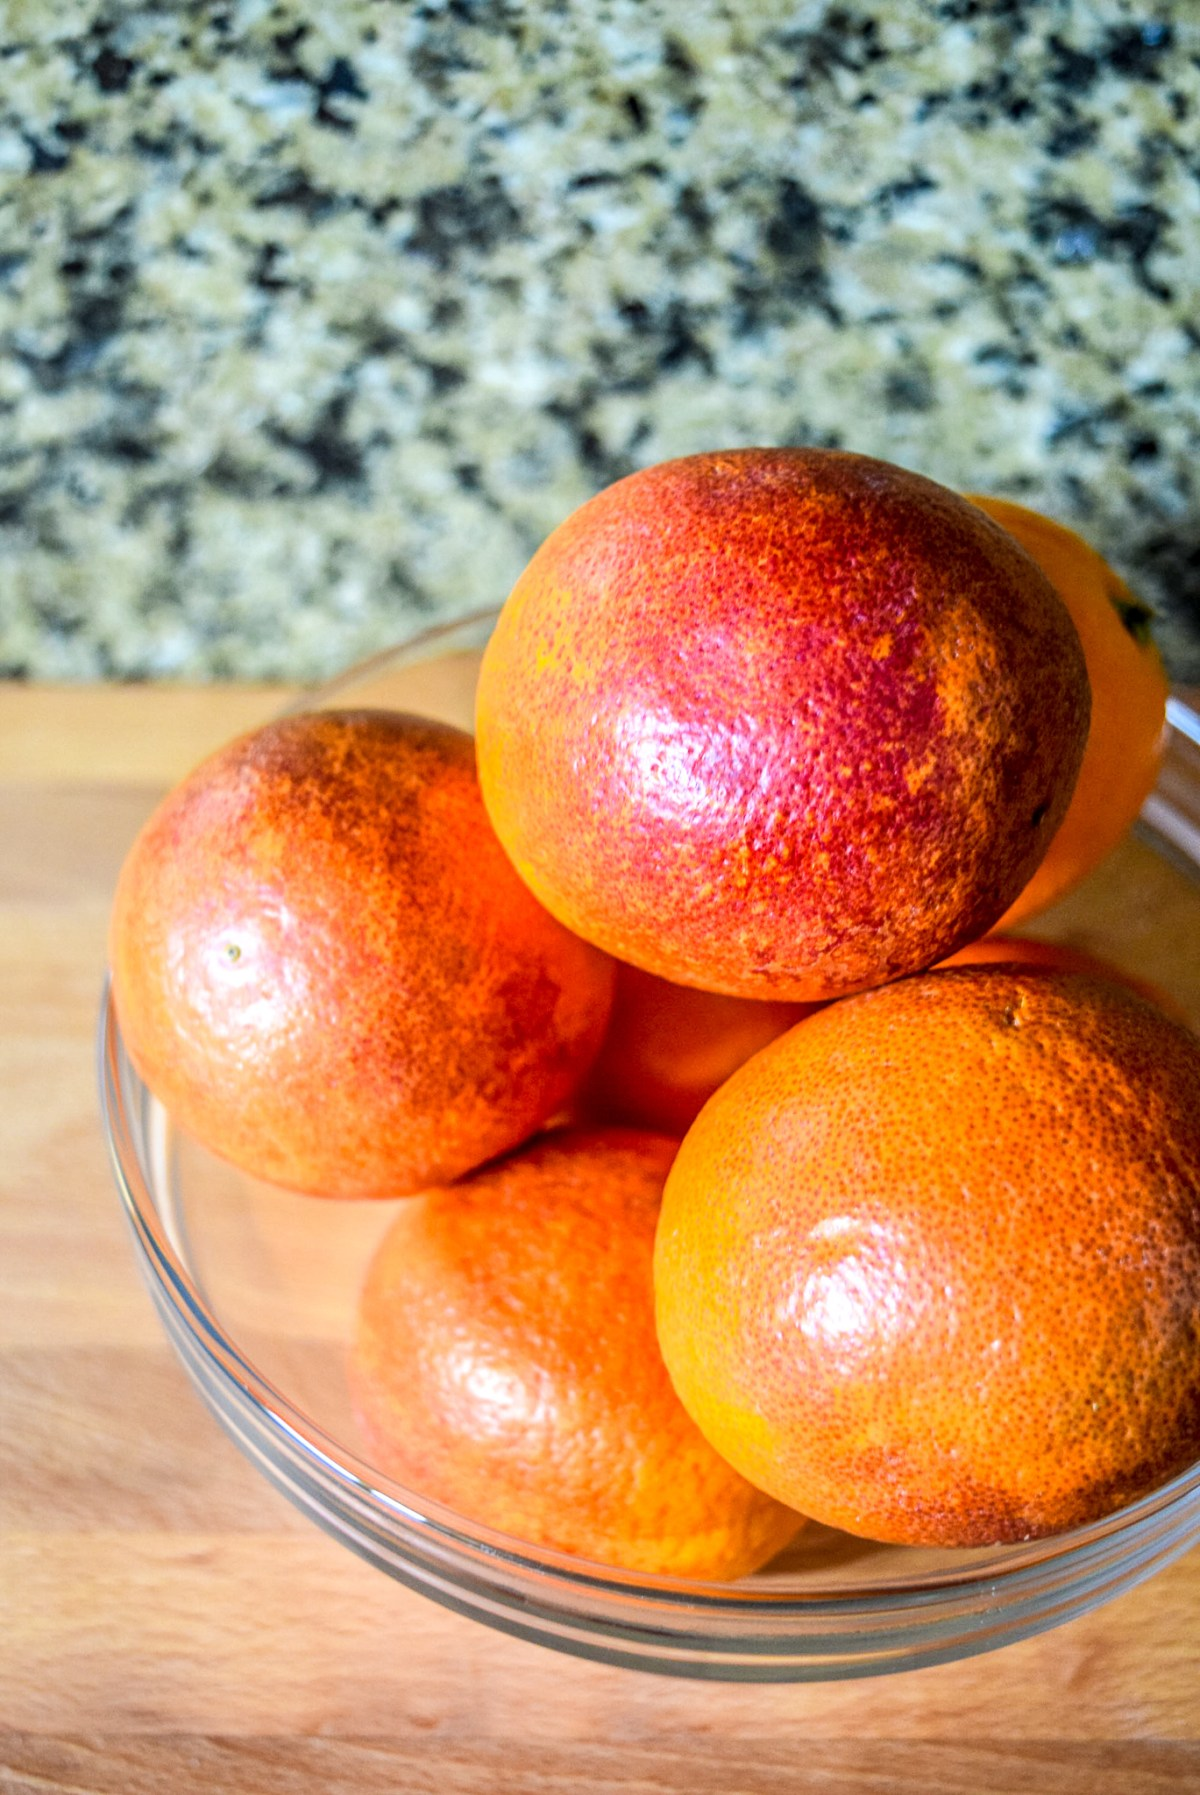 Glass bowl of blood oranges on wooden cutting board